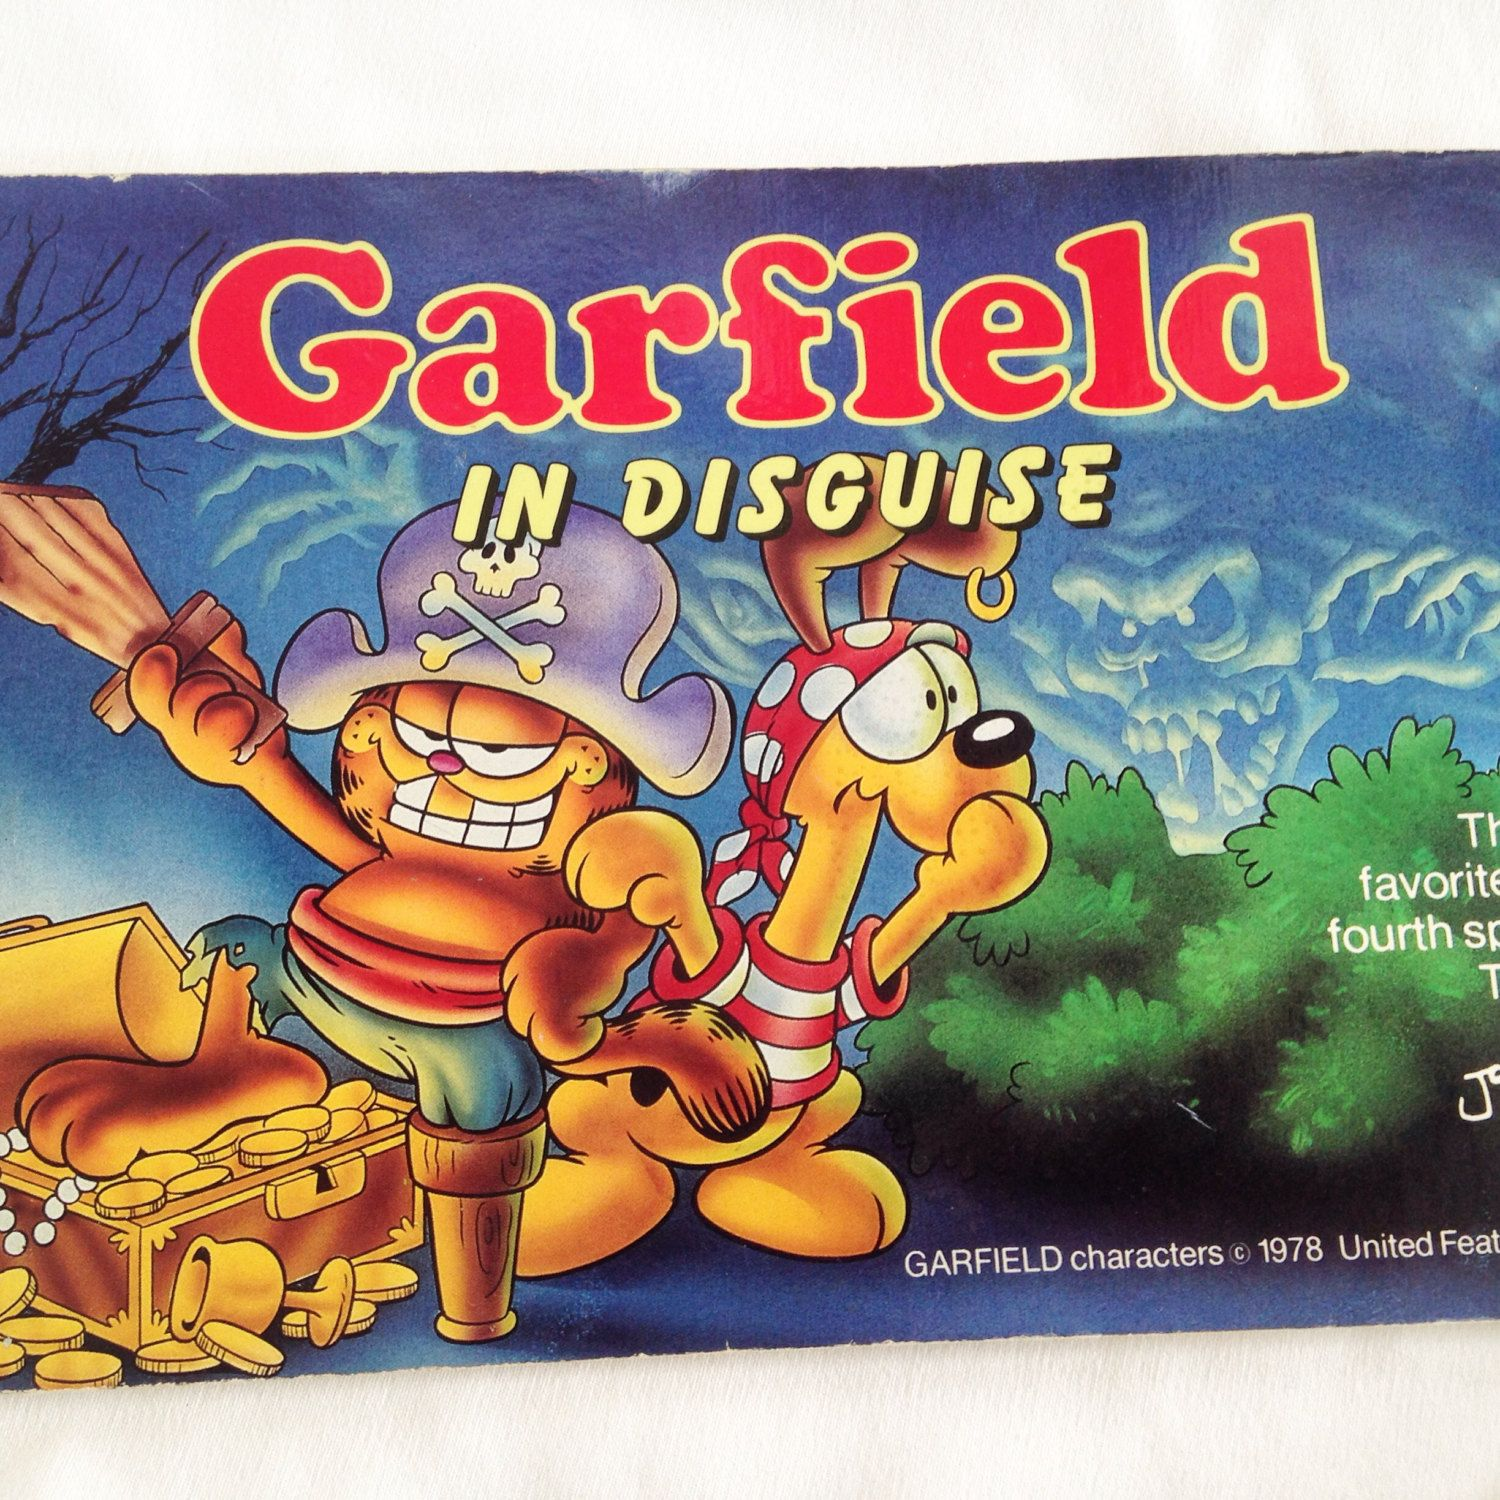 Vintage Garfield In Disguise Halloween Book 1985 By Retrovintageheart On Etsy Halloween Books For Kids Halloween Books Halloween Picture Books